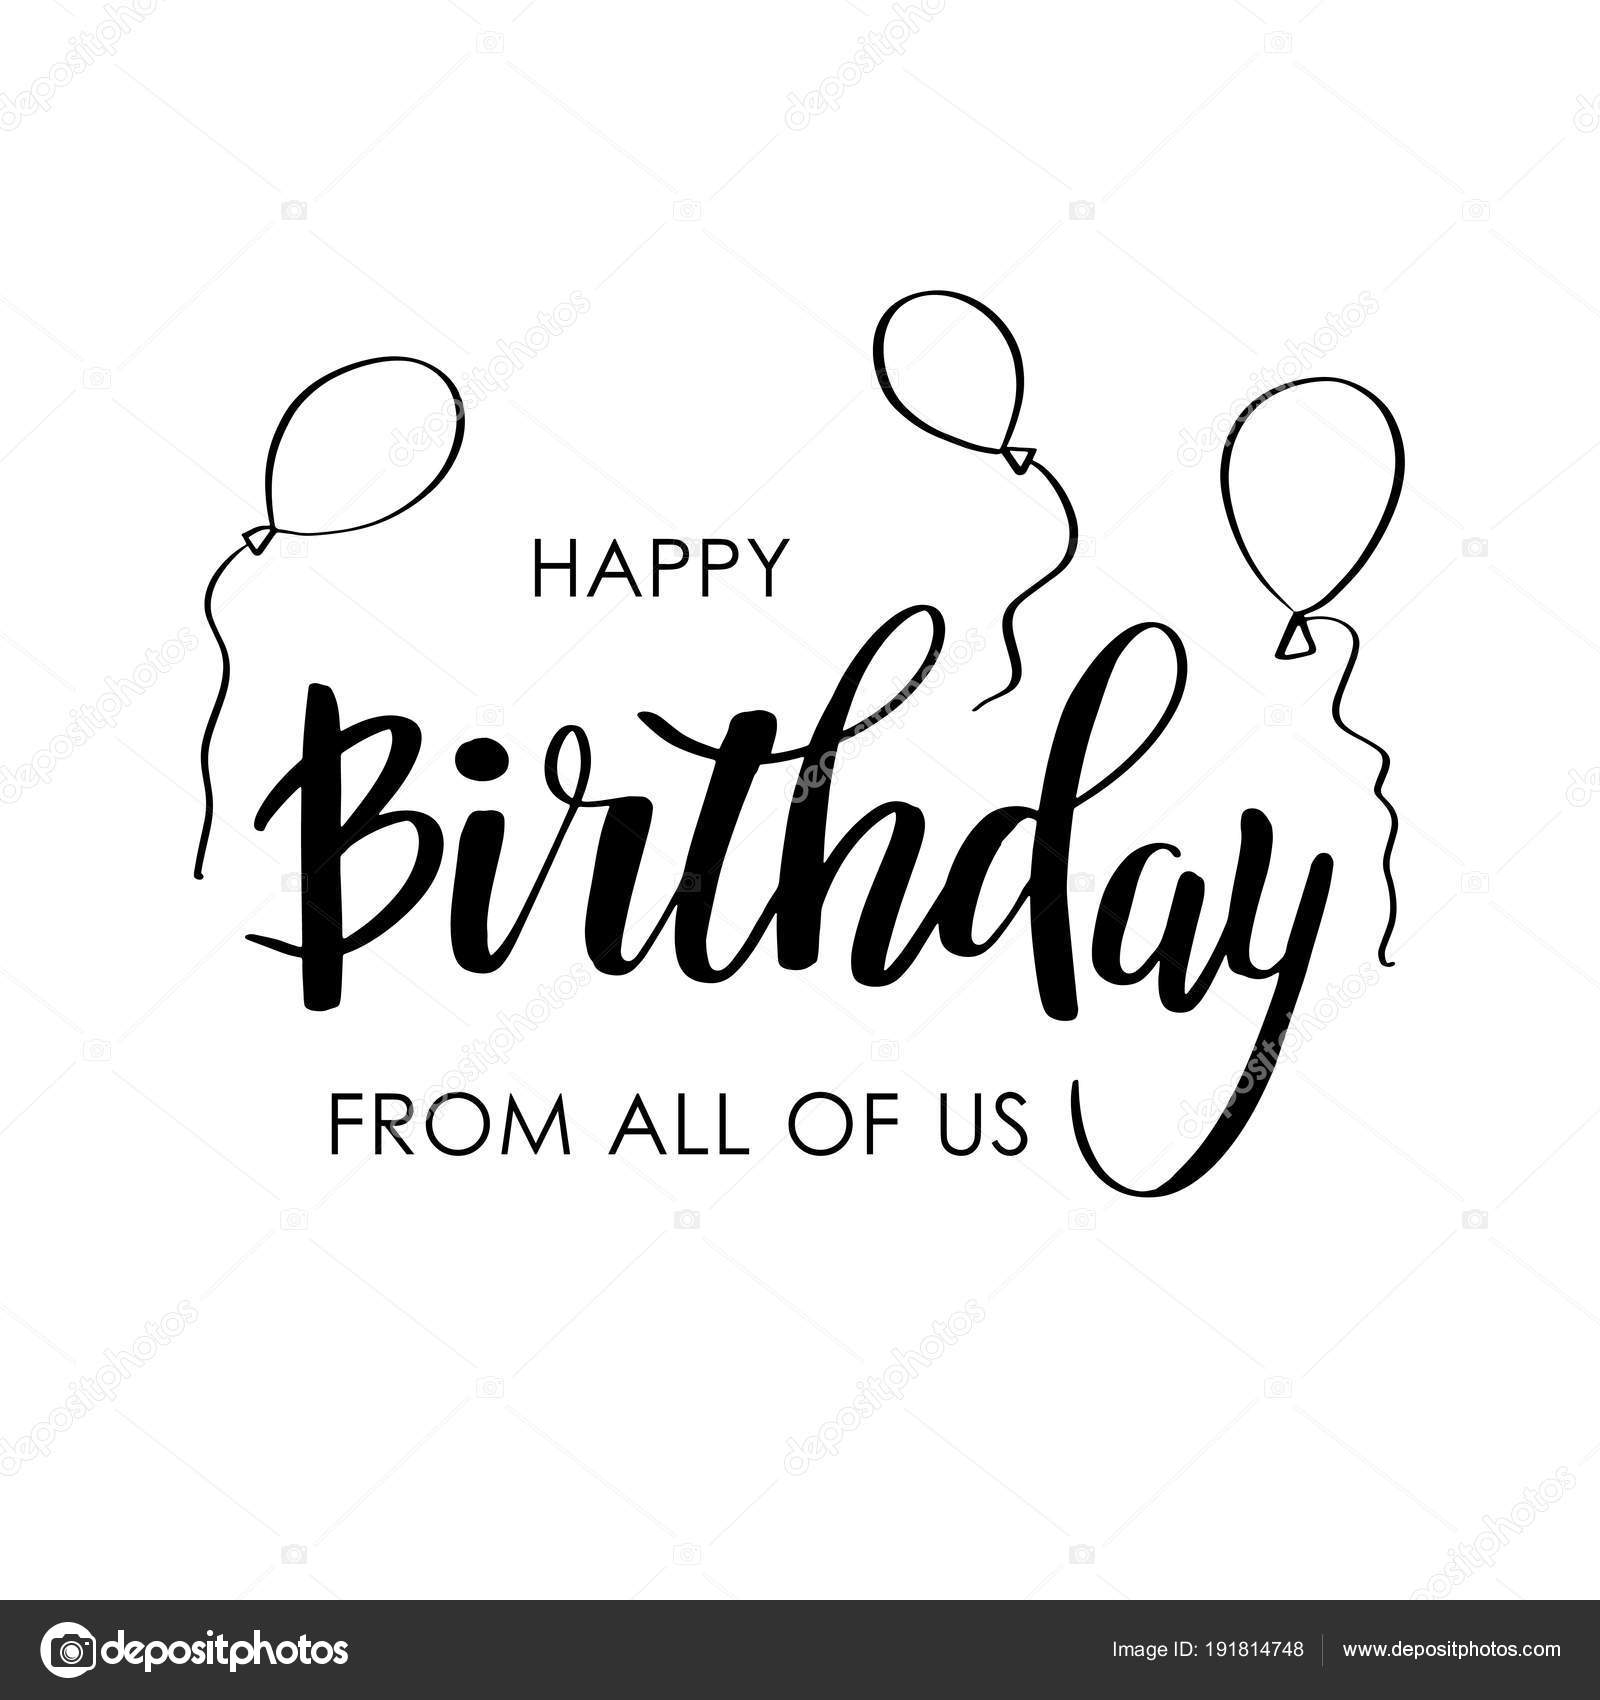 Happy birthday greeting card with lettering design stock vector happy birthday greeting card with lettering design stock vector m4hsunfo